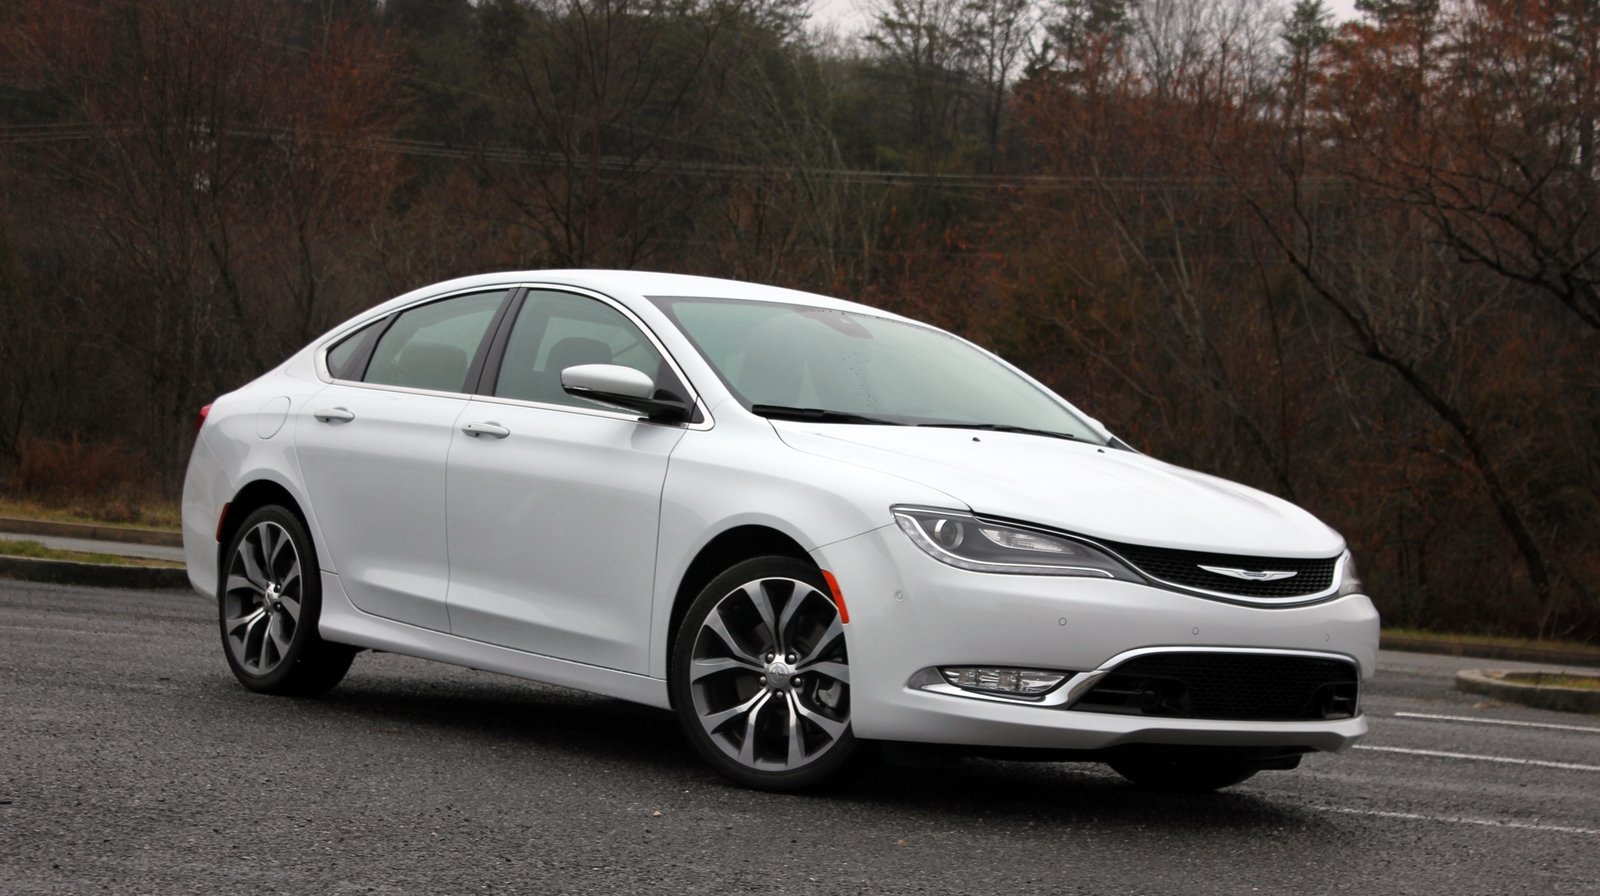 2015 chrysler 200c driven picture 608472 car review top speed. Black Bedroom Furniture Sets. Home Design Ideas